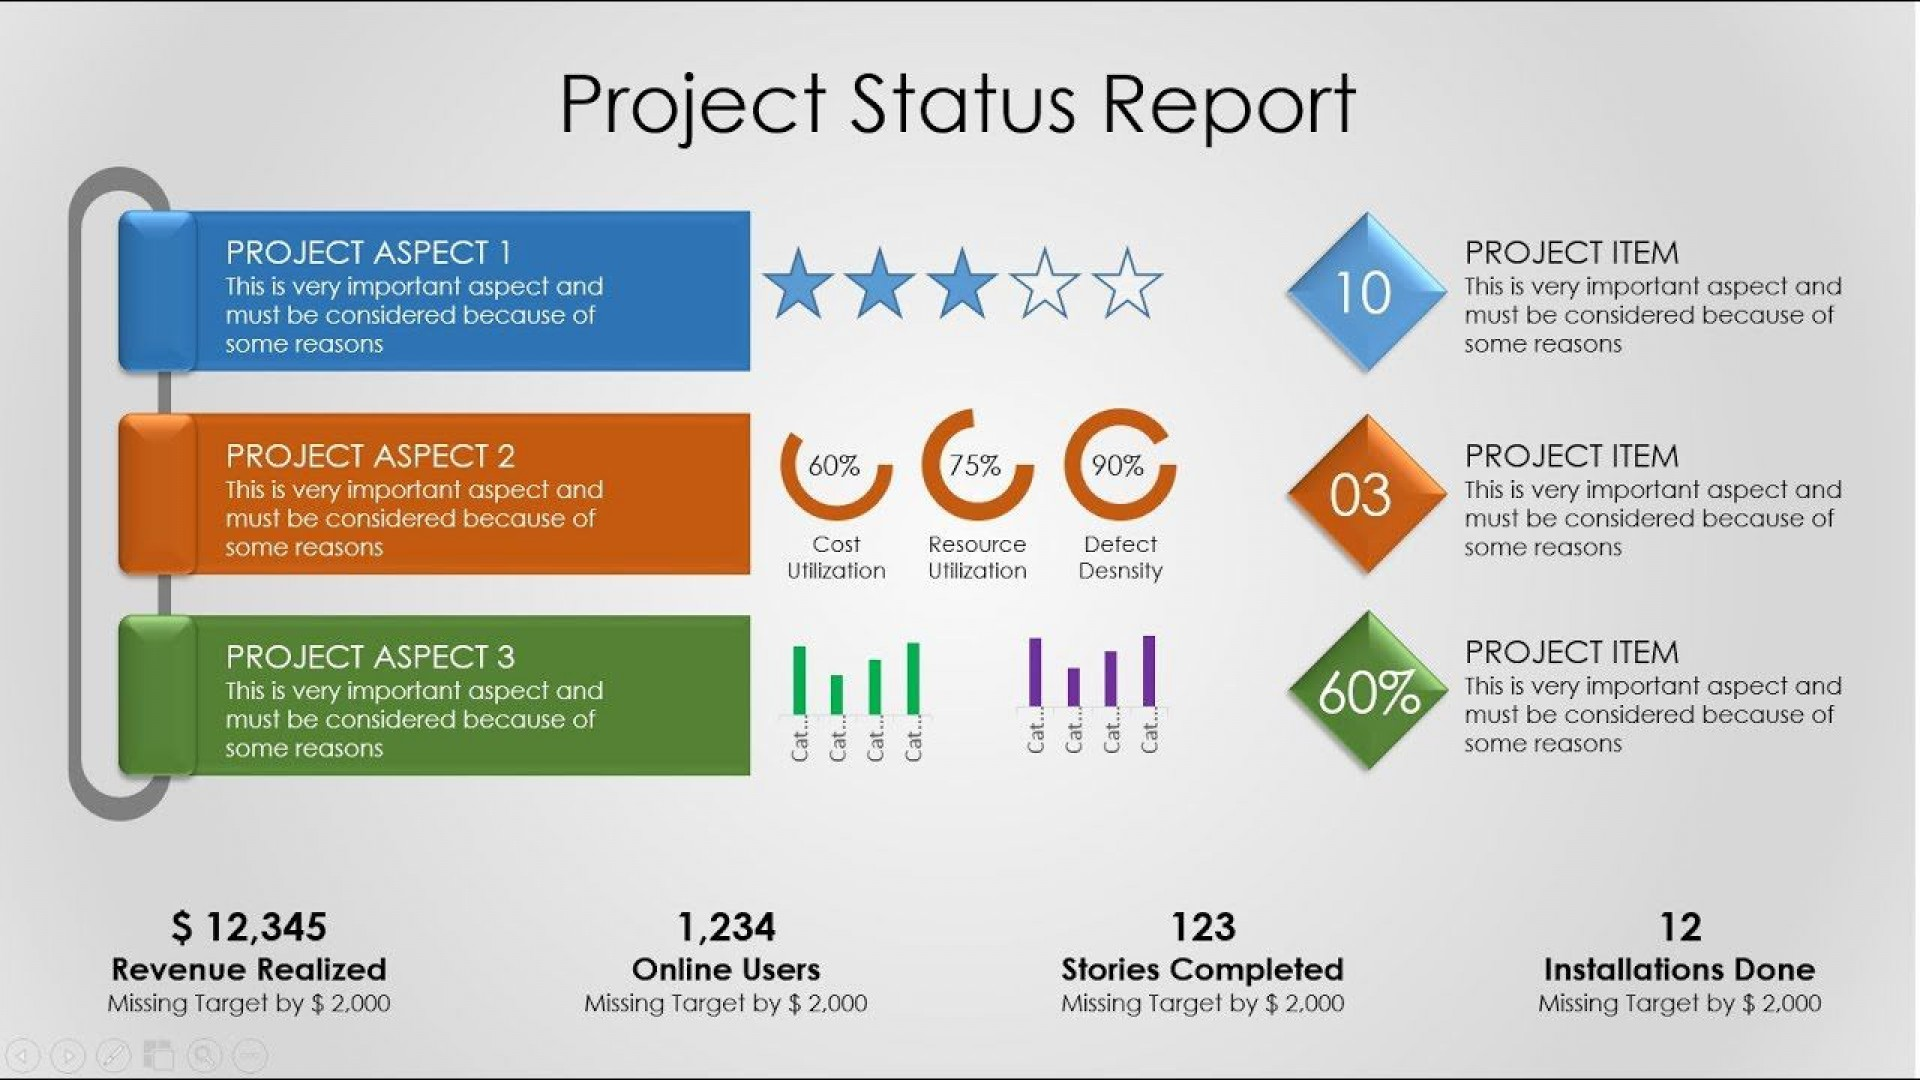 008 Phenomenal Project Management Statu Report Template Ppt Photo  Template+powerpoint Weekly1920